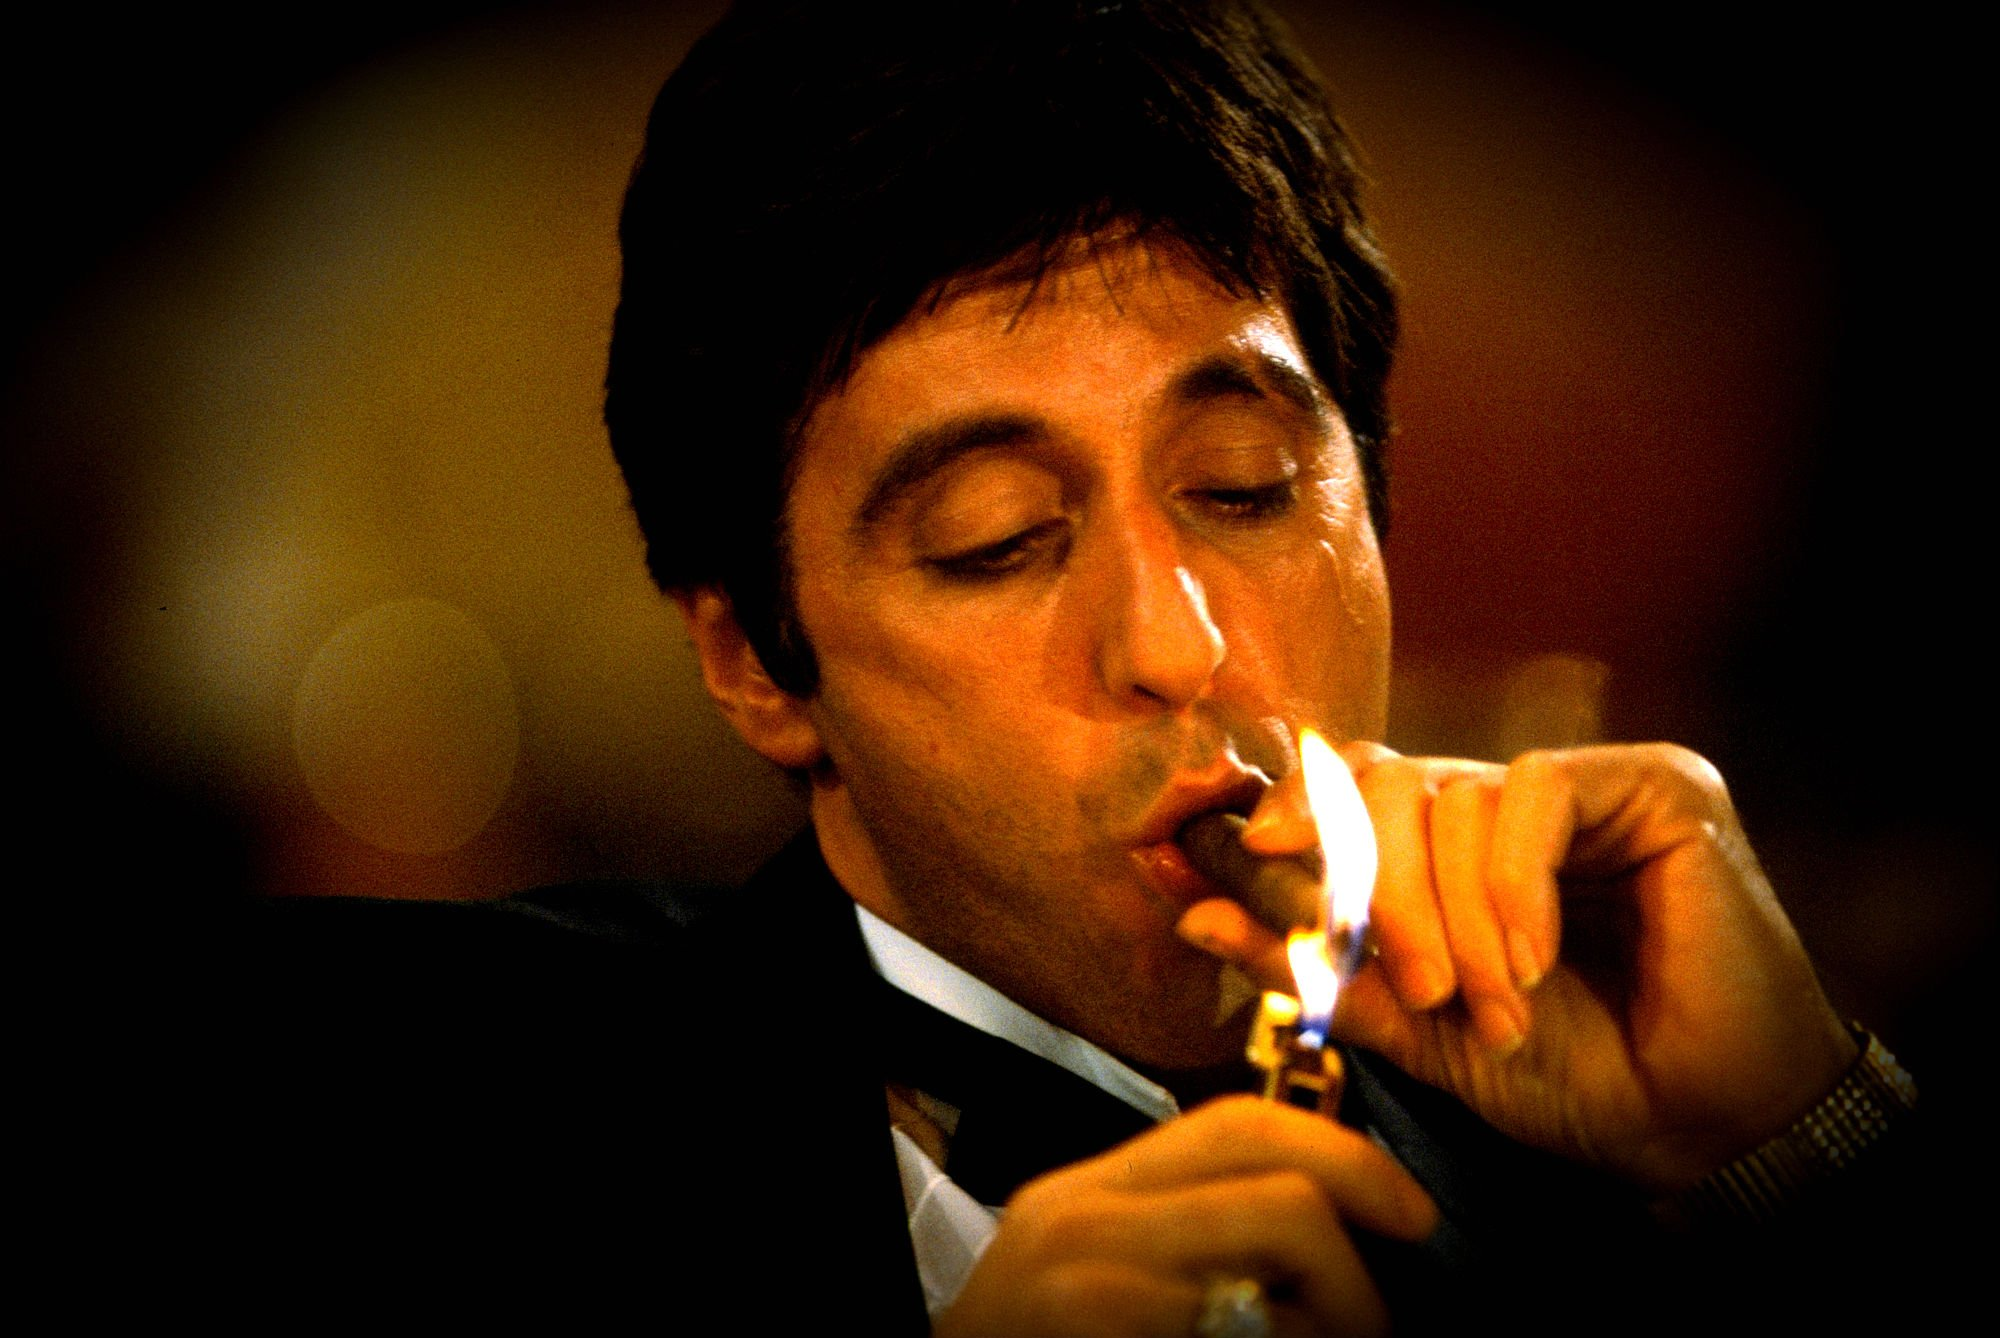 Godfather Hd Wallpaper Scarface Crime Drama Movie Film Fire Wallpaper 2000x1338